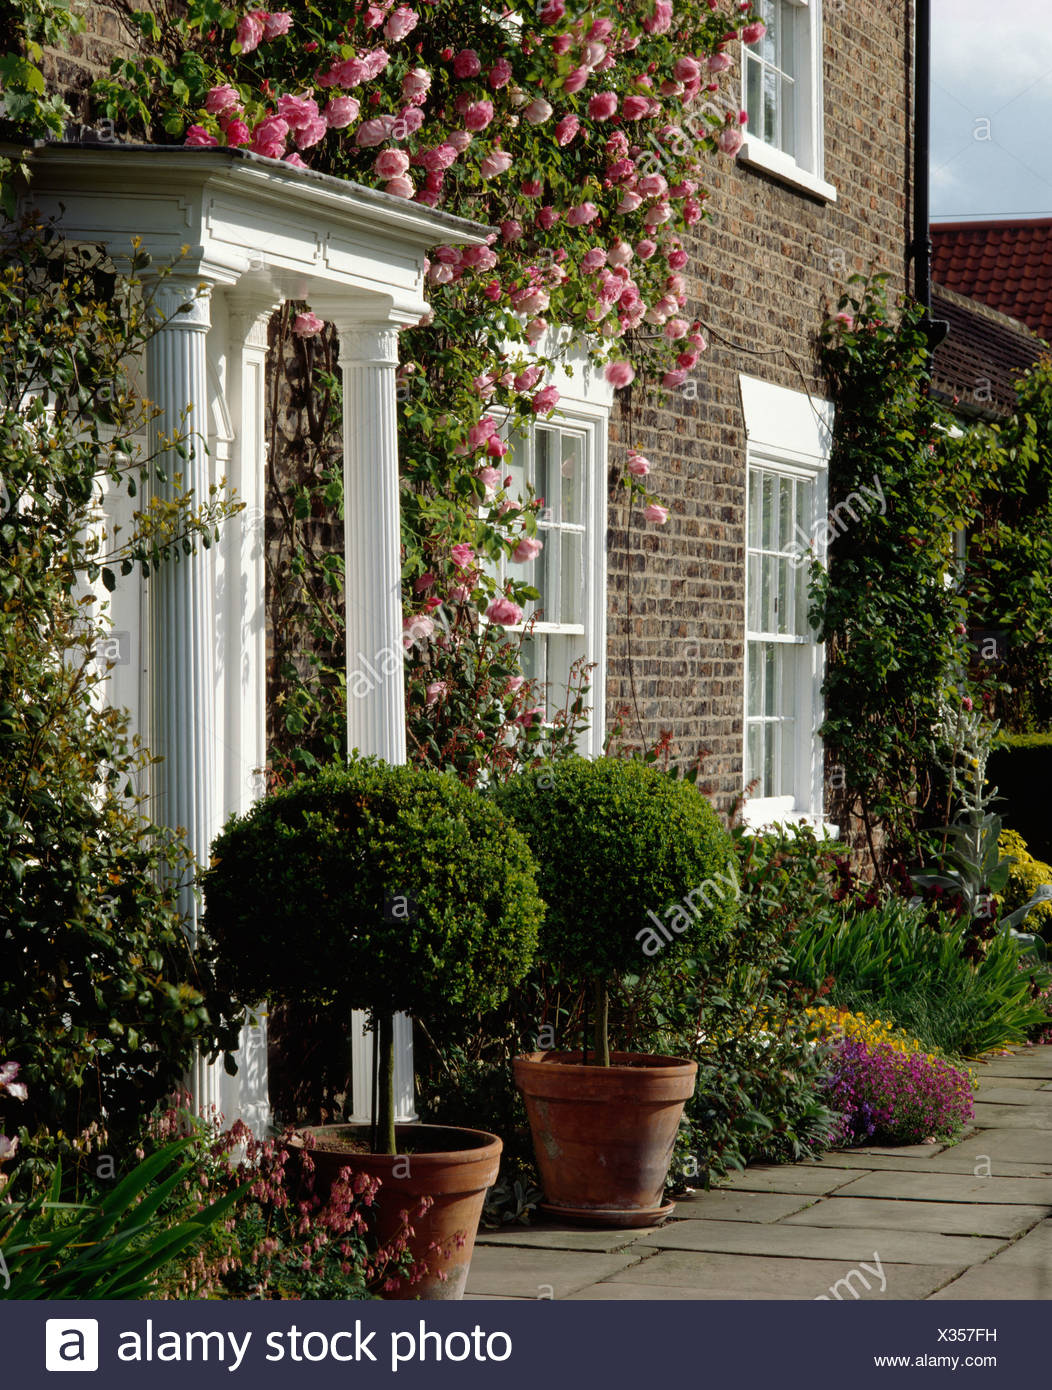 Clipped Shrubs In Terracotta Pots On Either Side Of Front Door With